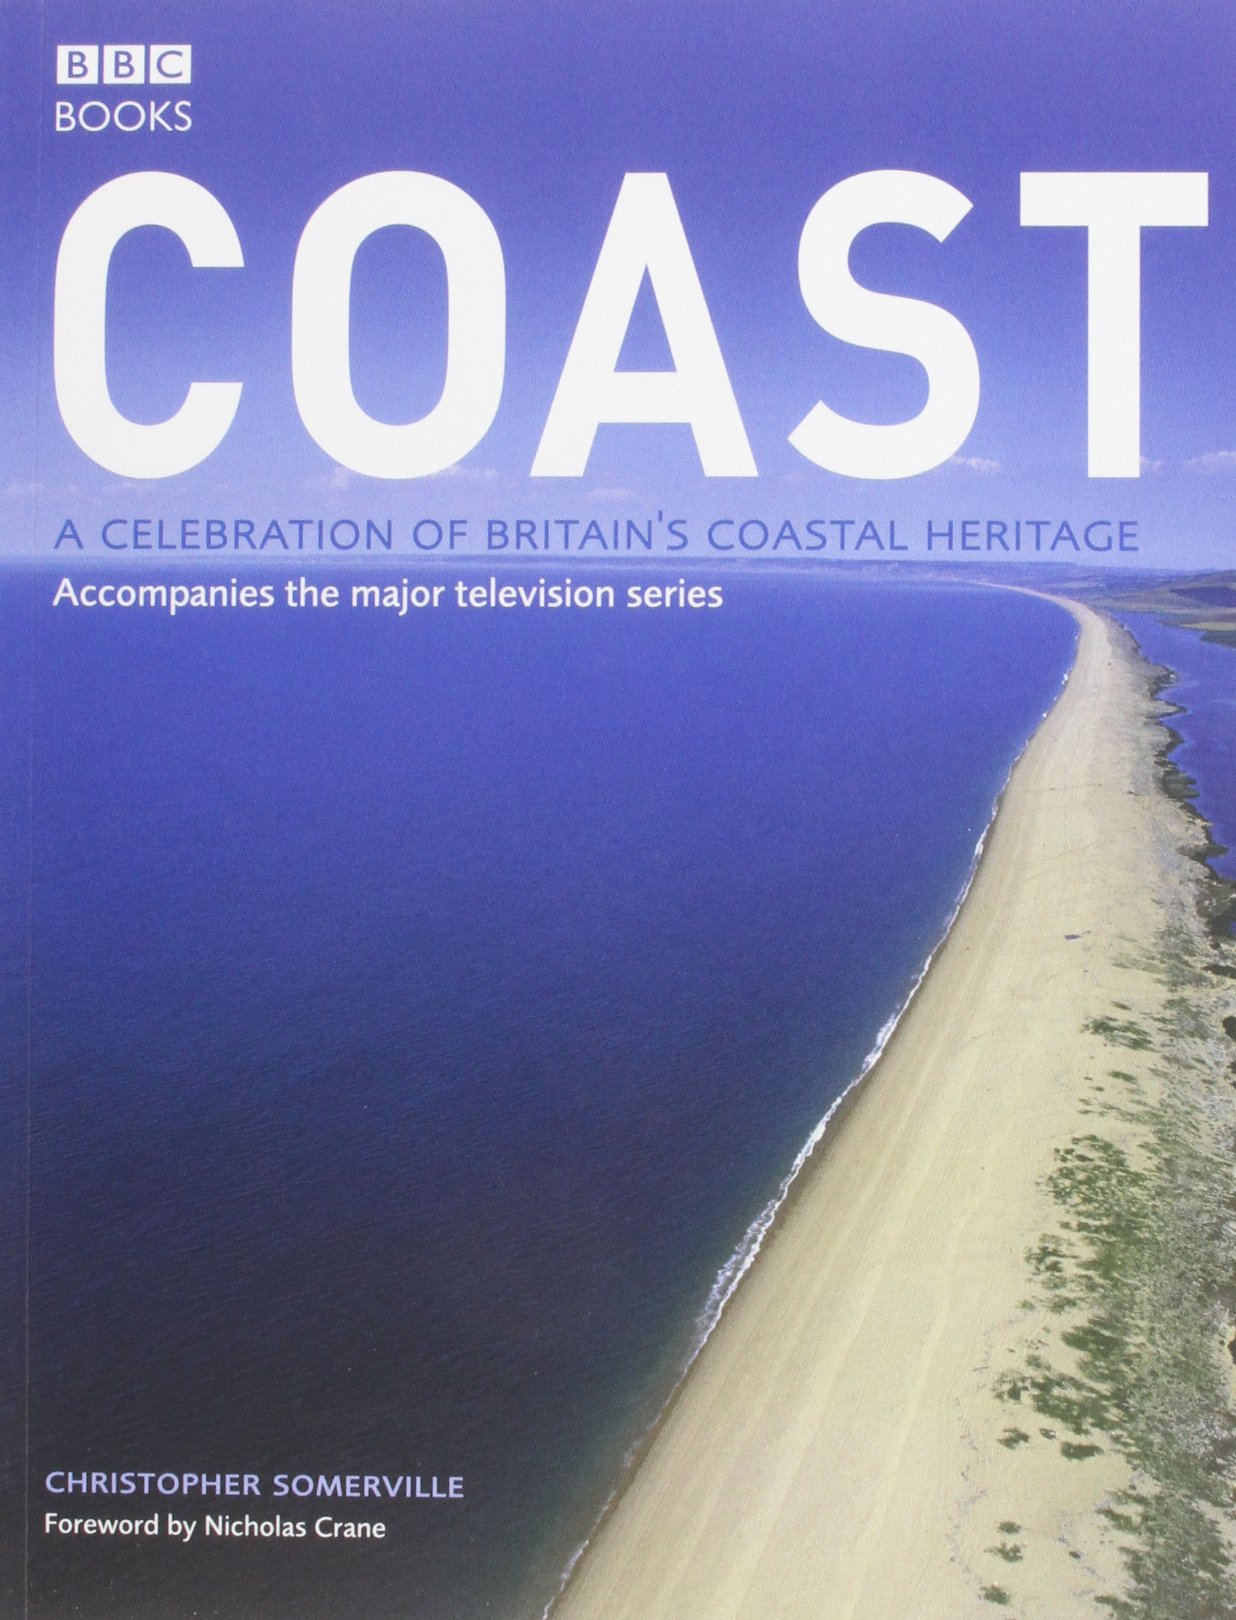 Coast: A Celebration of Britain's Coastal Heritage